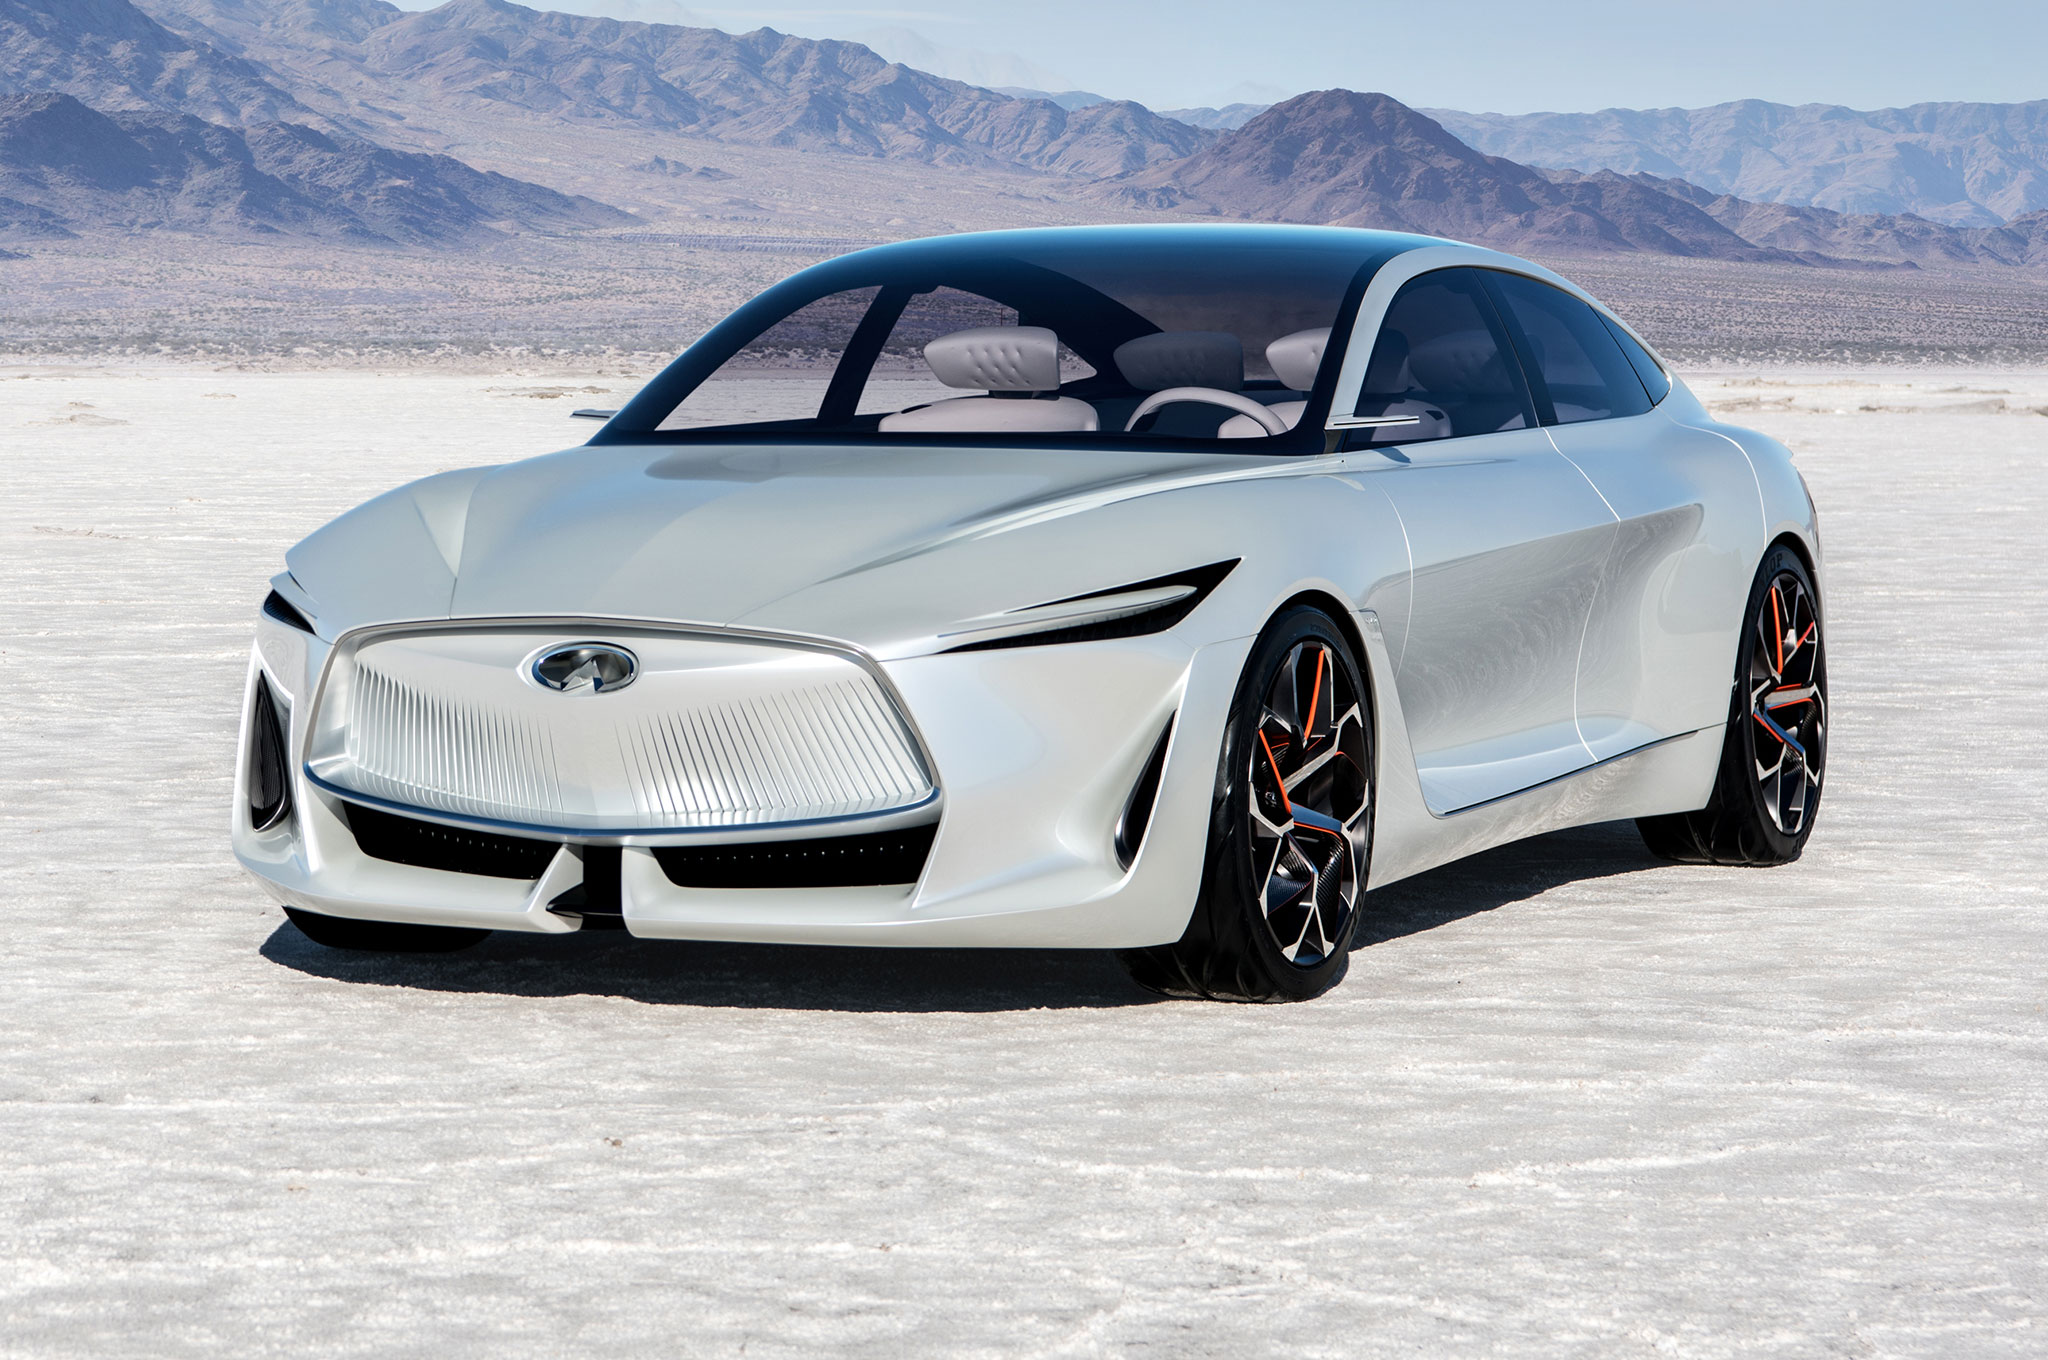 Infiniti Q Inspiration Concept Front Three Quarter View